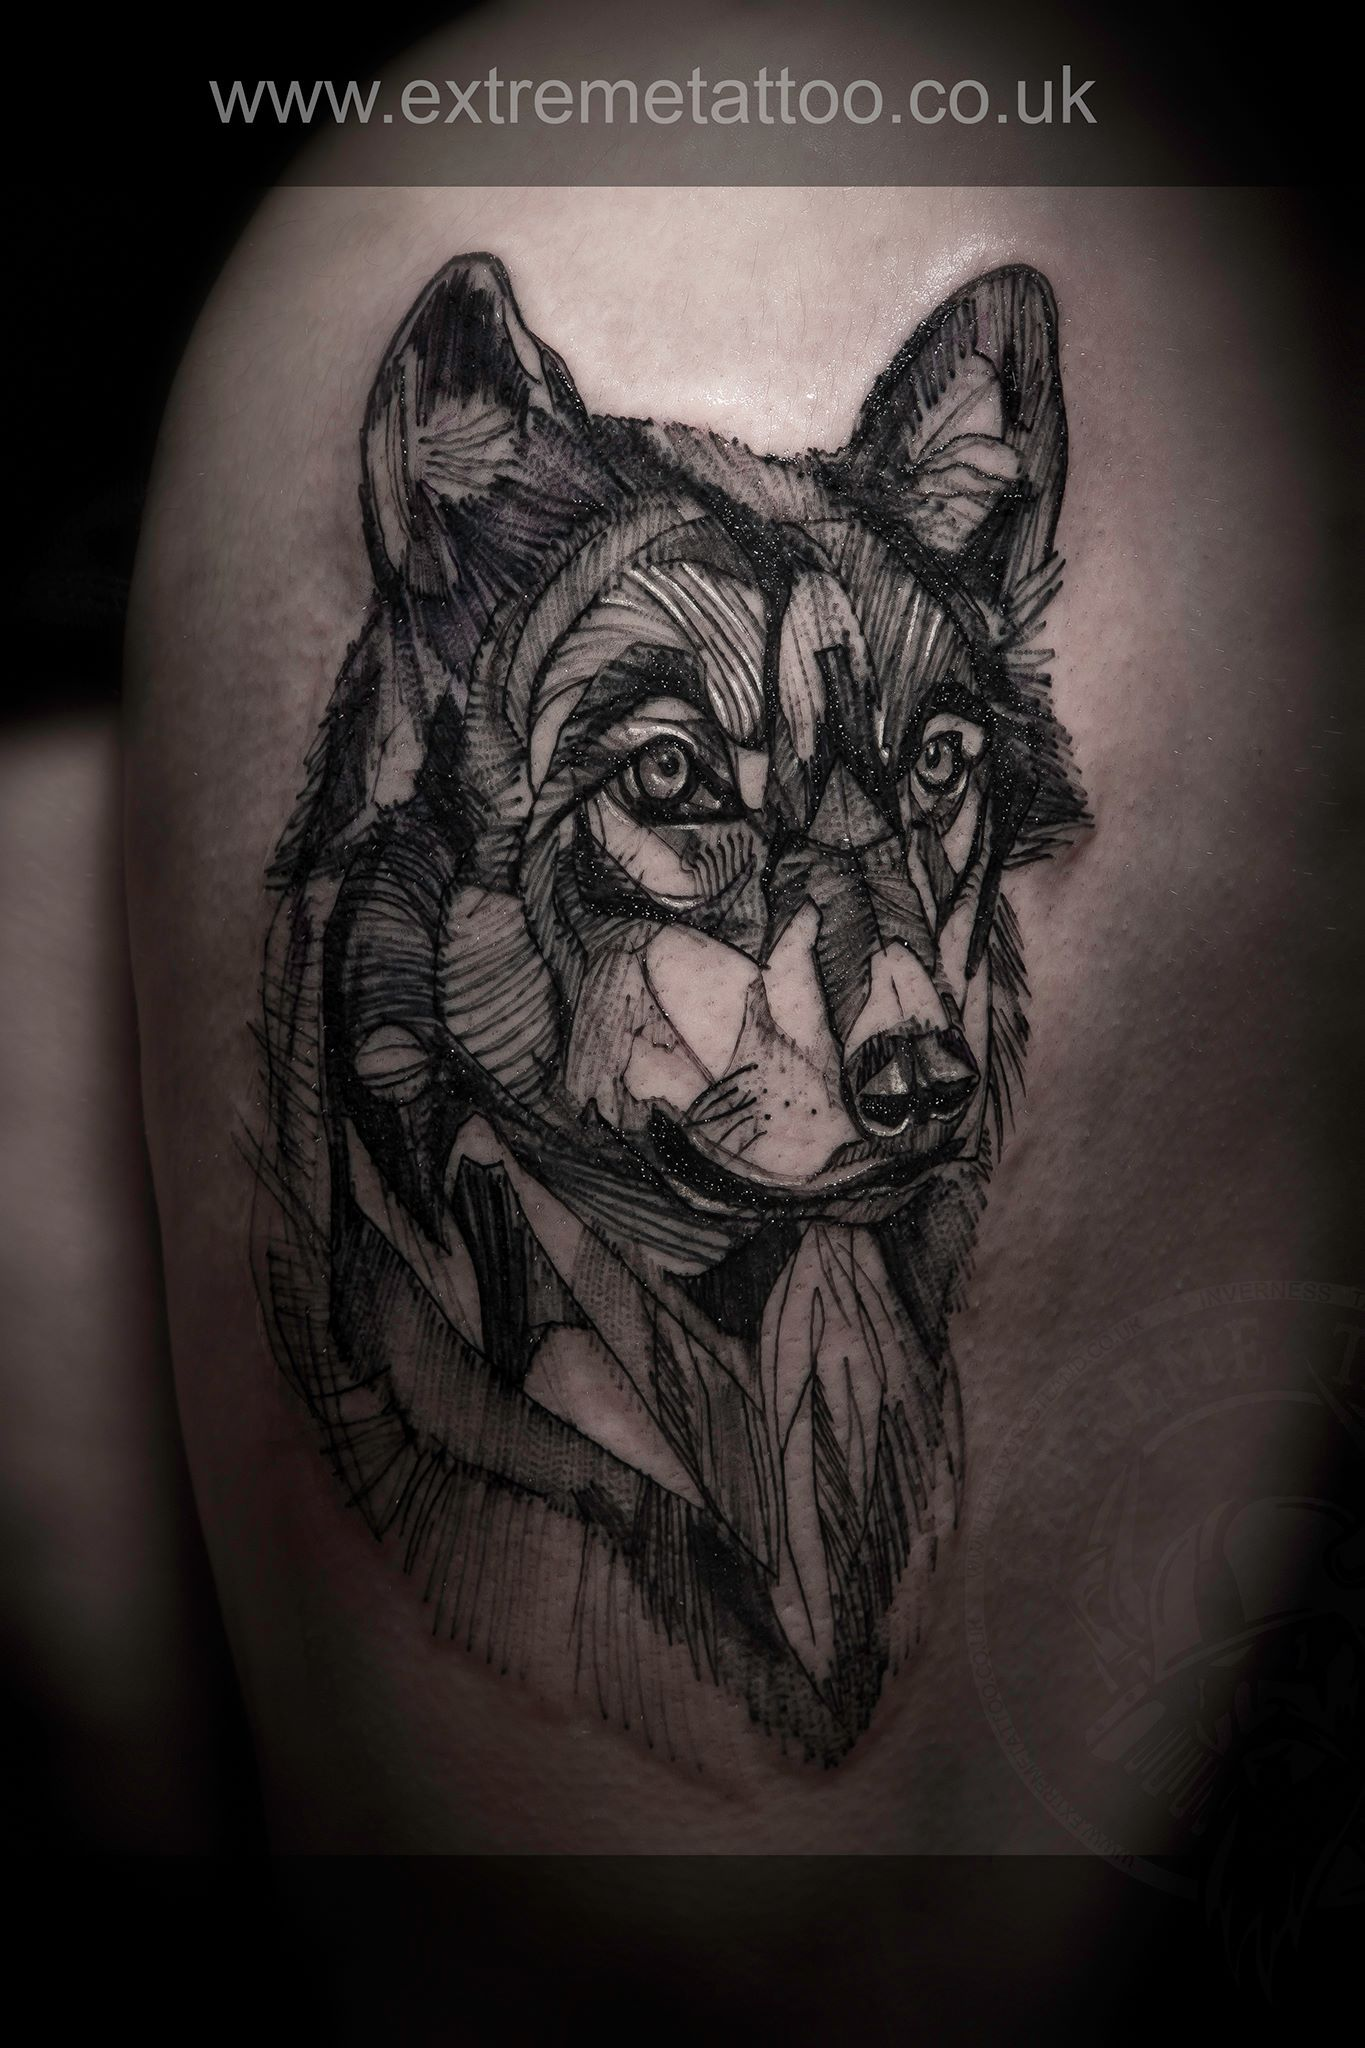 Geometric Wolf Done At Extreme Tattoo Piercing Inverness Highland Scotland By Dan Lica At Our Studio You Can Get All Kind Of Tattoos And Pi Con Imagenes Tatuajes Proyectos